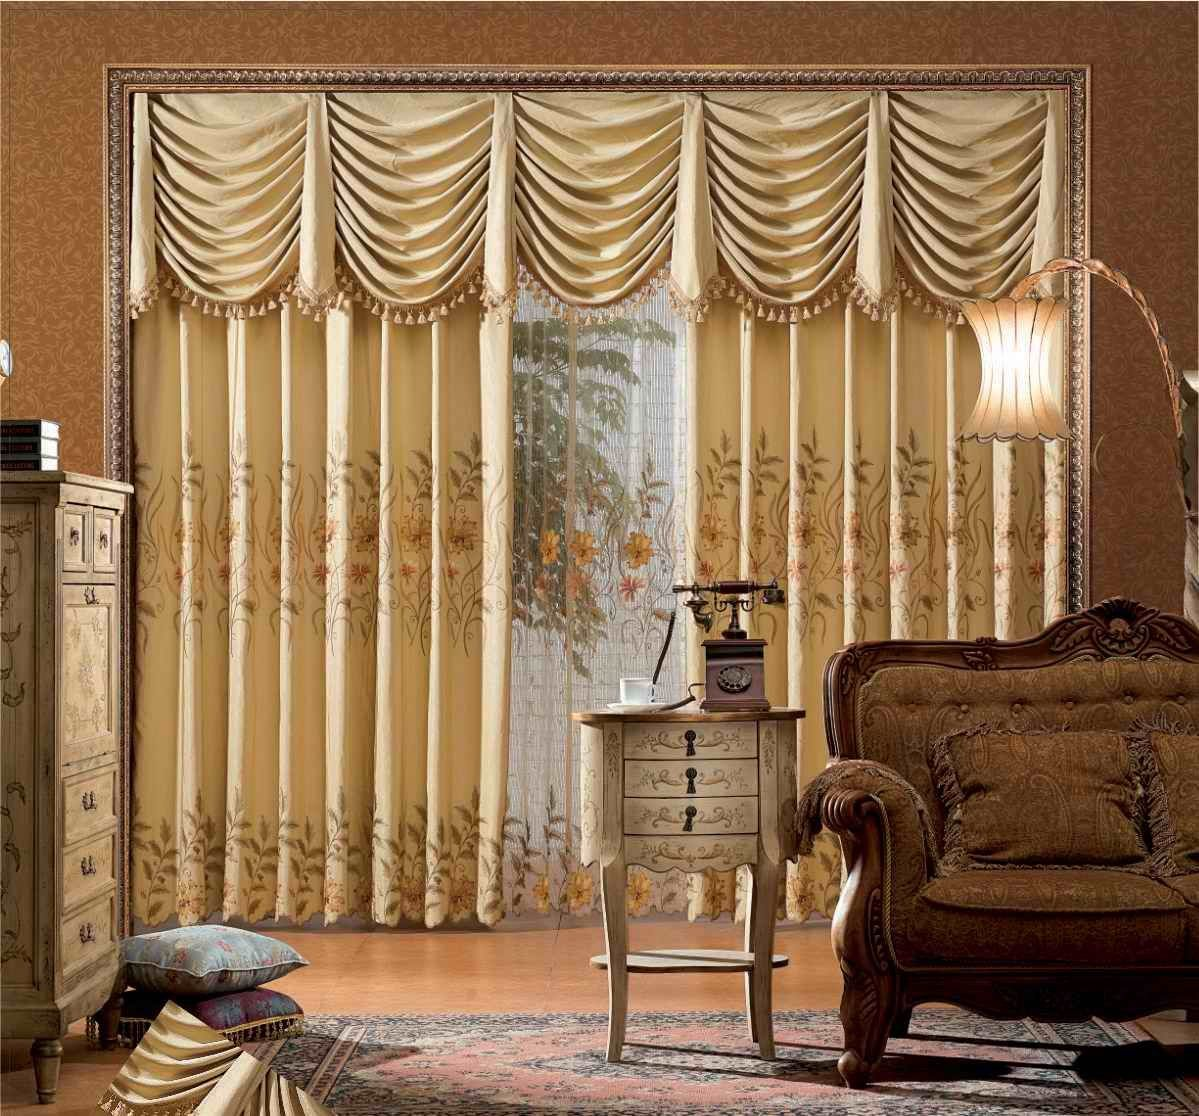 Make Modern Living Room Curtains  Httphighlifestylewp Alluring Living Room Curtains Design Decorating Design